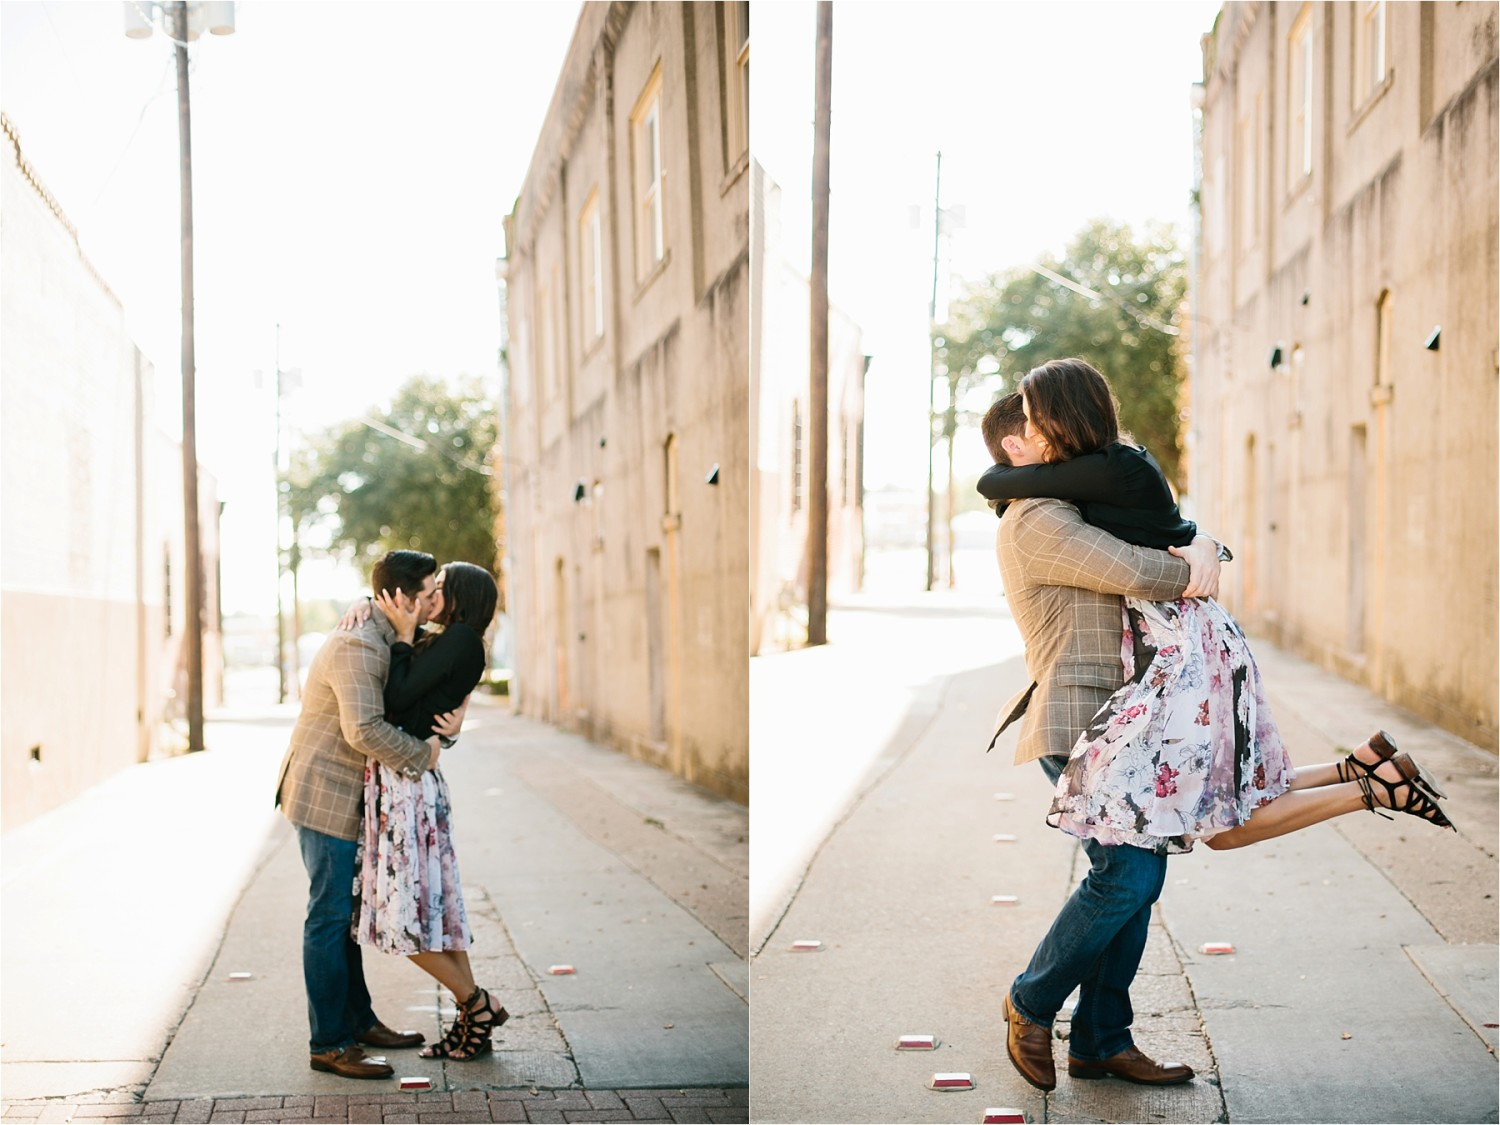 an-intimate-sunrise-session-by-north-texas-wedding-photographer-rachel-meagan-photography-_-61